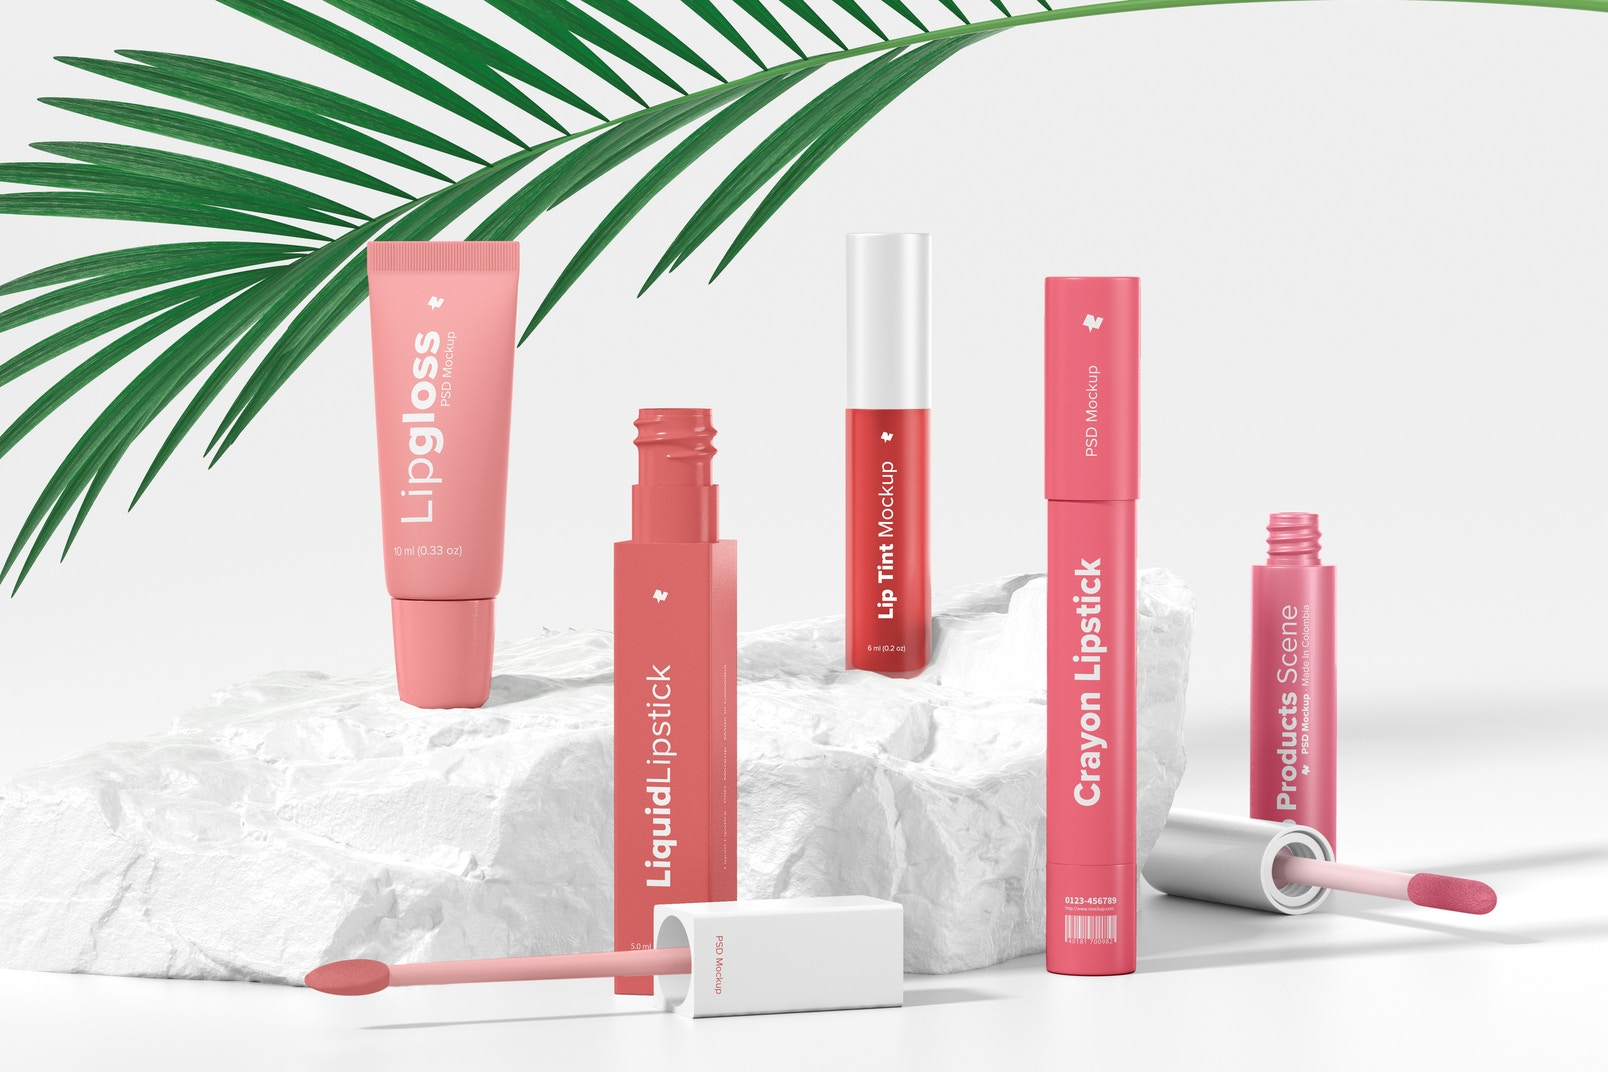 Lip Products Scene Mockup, Front View